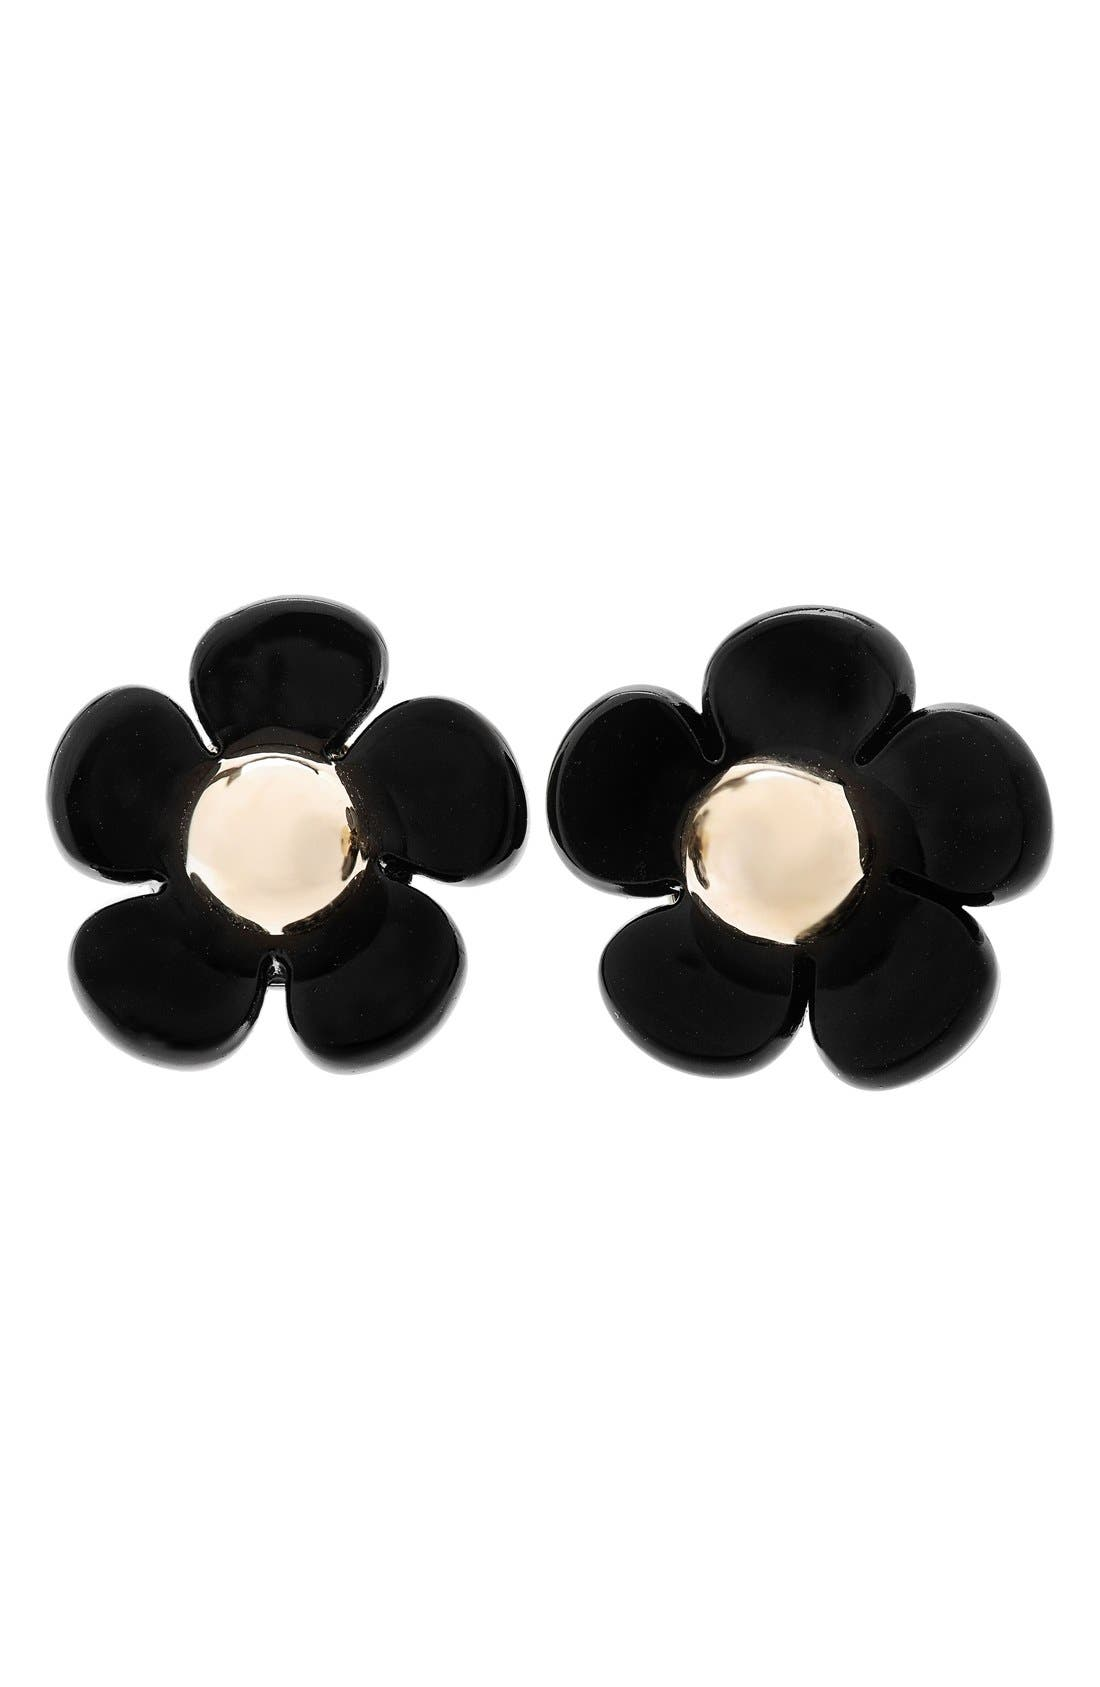 Floral Stud Earrings,                             Main thumbnail 1, color,                             Black/ Gold